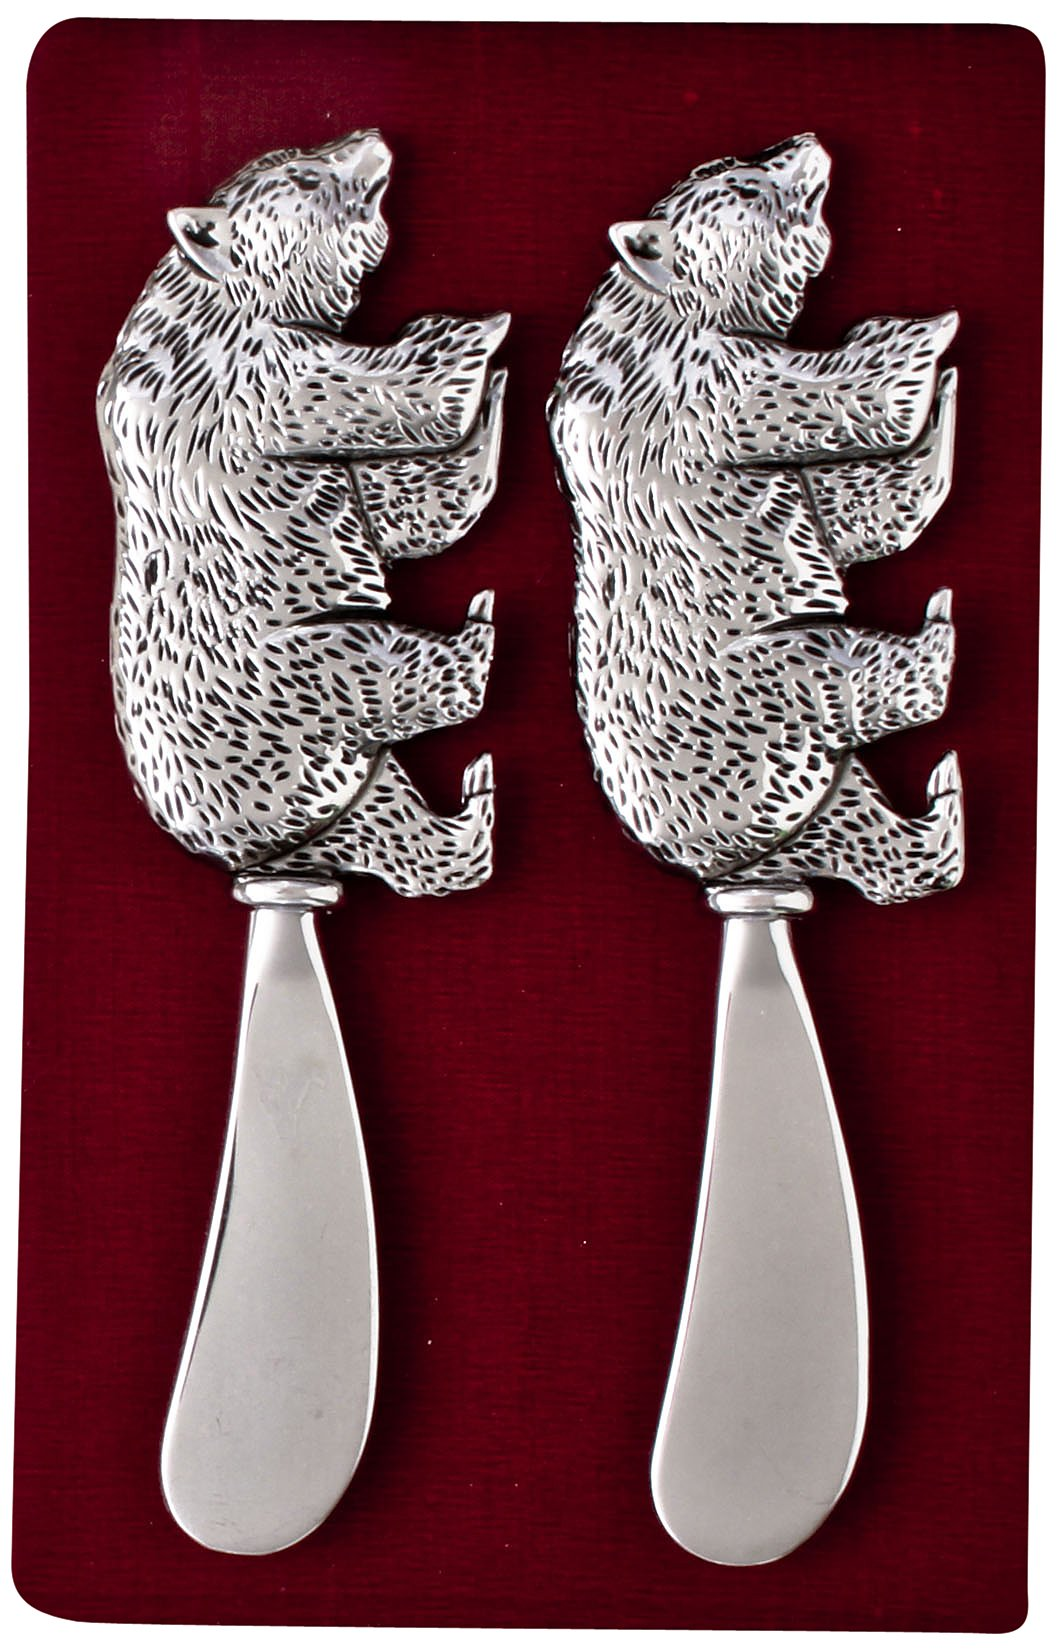 Thirstystone N166 Cheese Spreaders, Bear